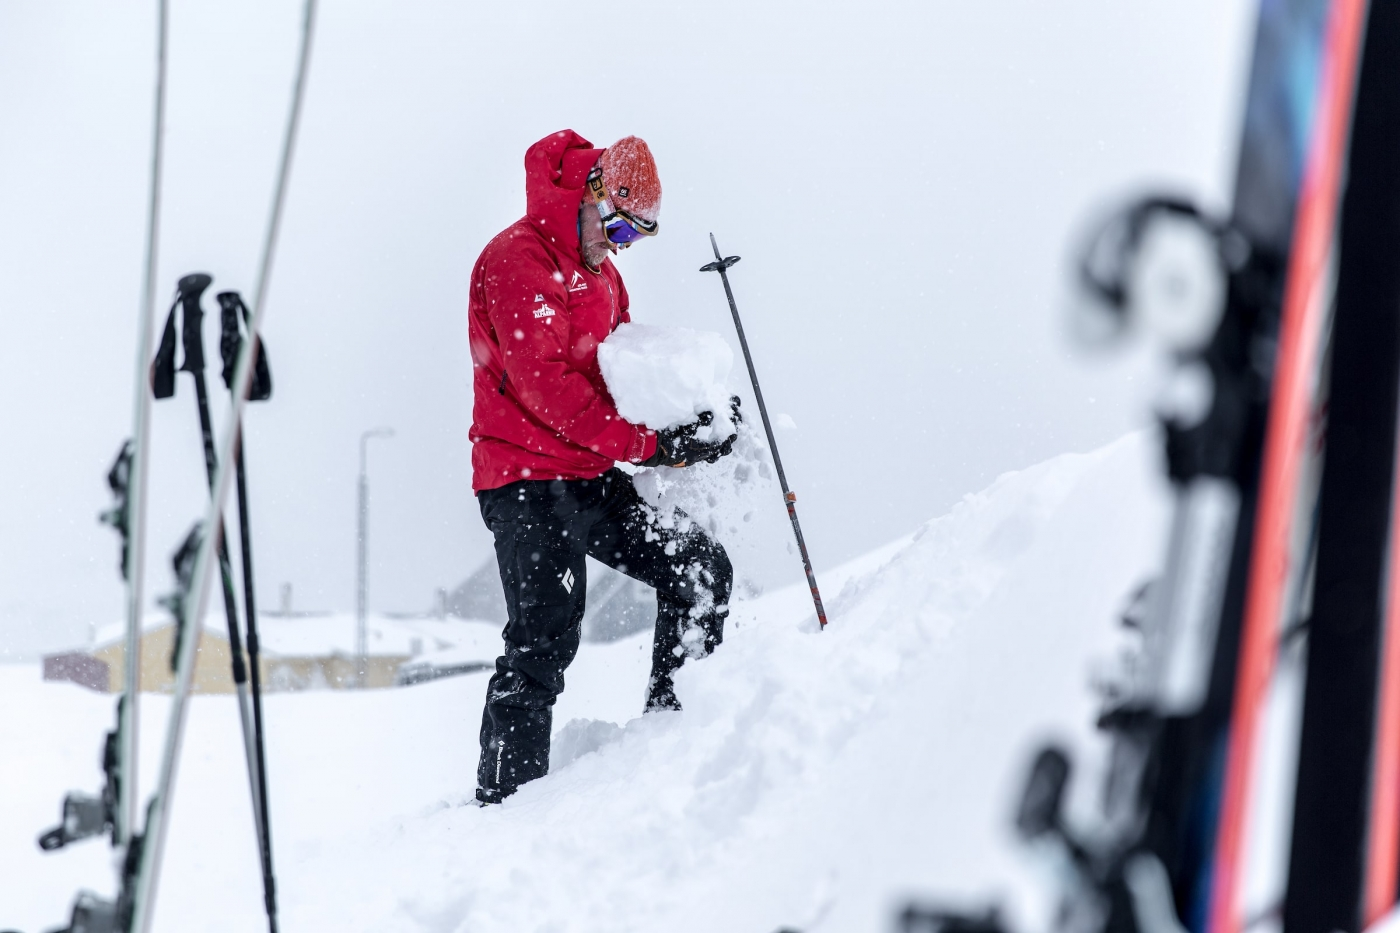 The ski touring guide checking snow conditions in Kuummiut in East Greenland. Photo by Mads Pihl - Visit Greenland